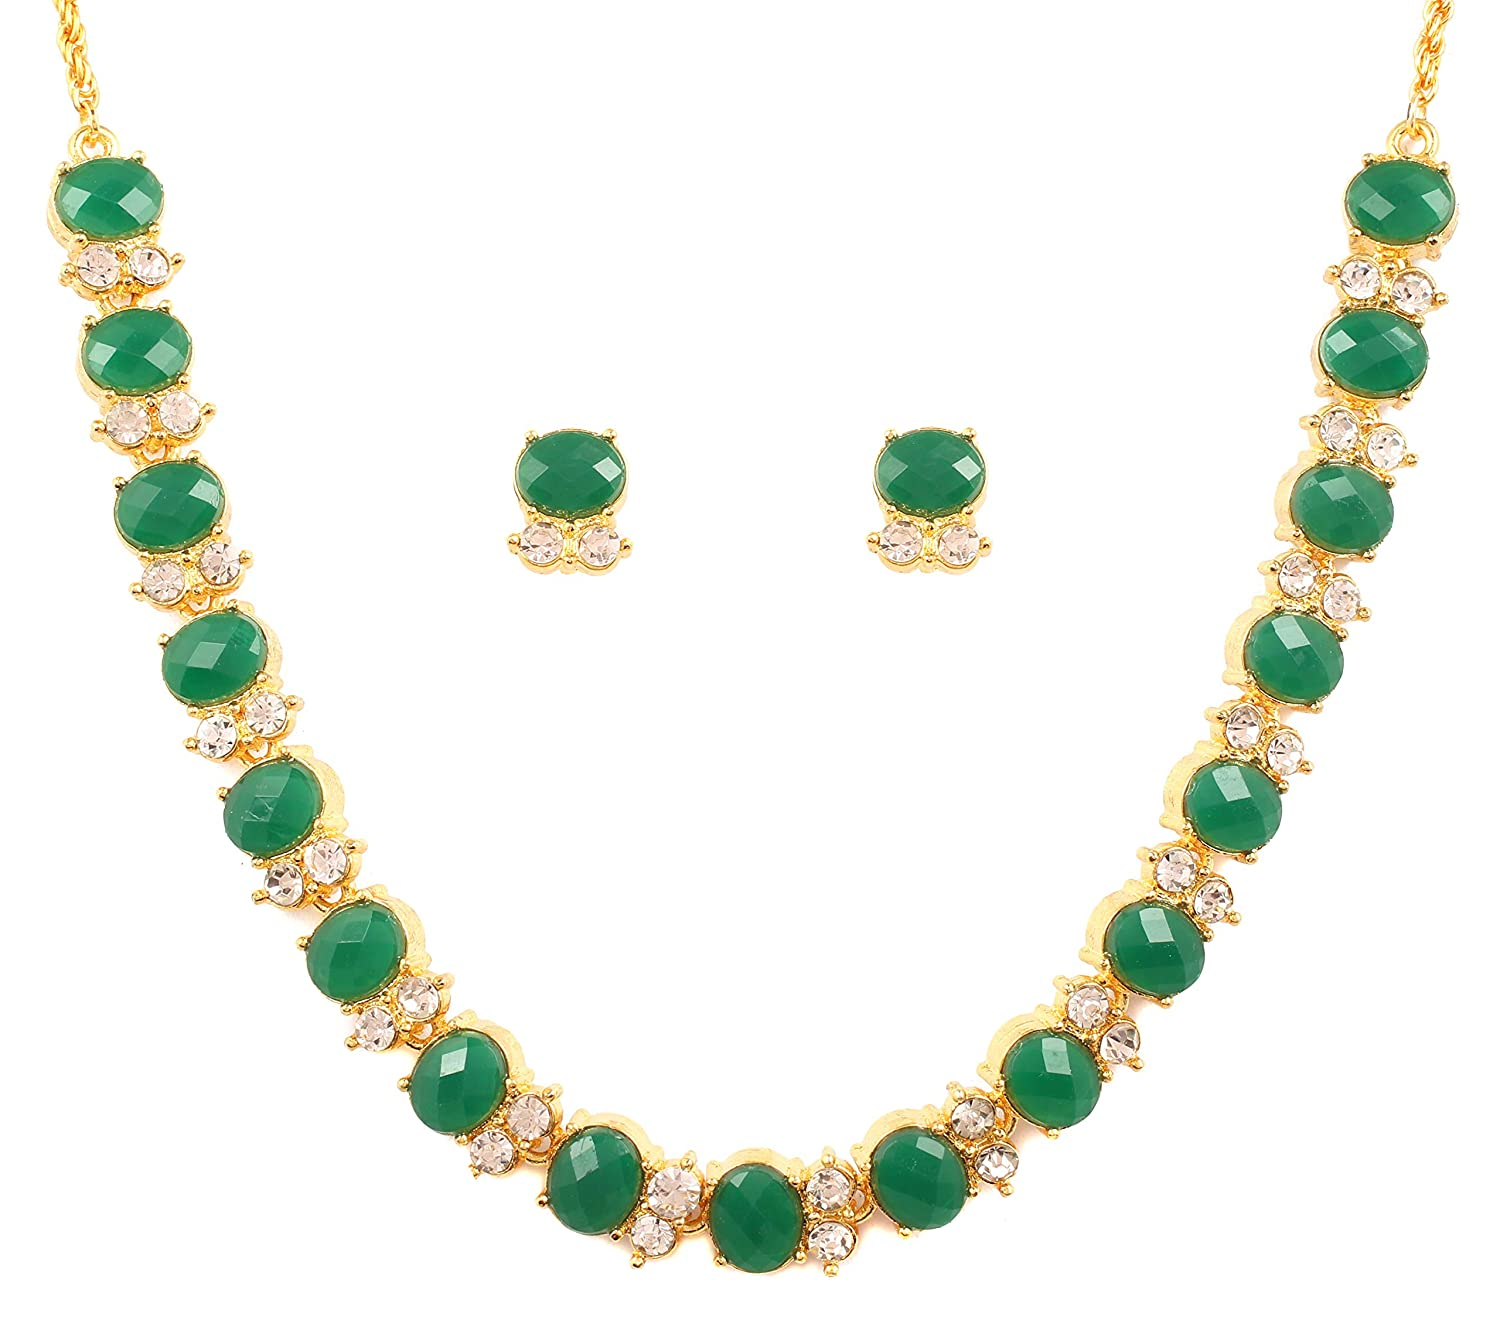 Buy Touchstone Gold Tone Alloy Metal Royal Look Green Faux Emerald